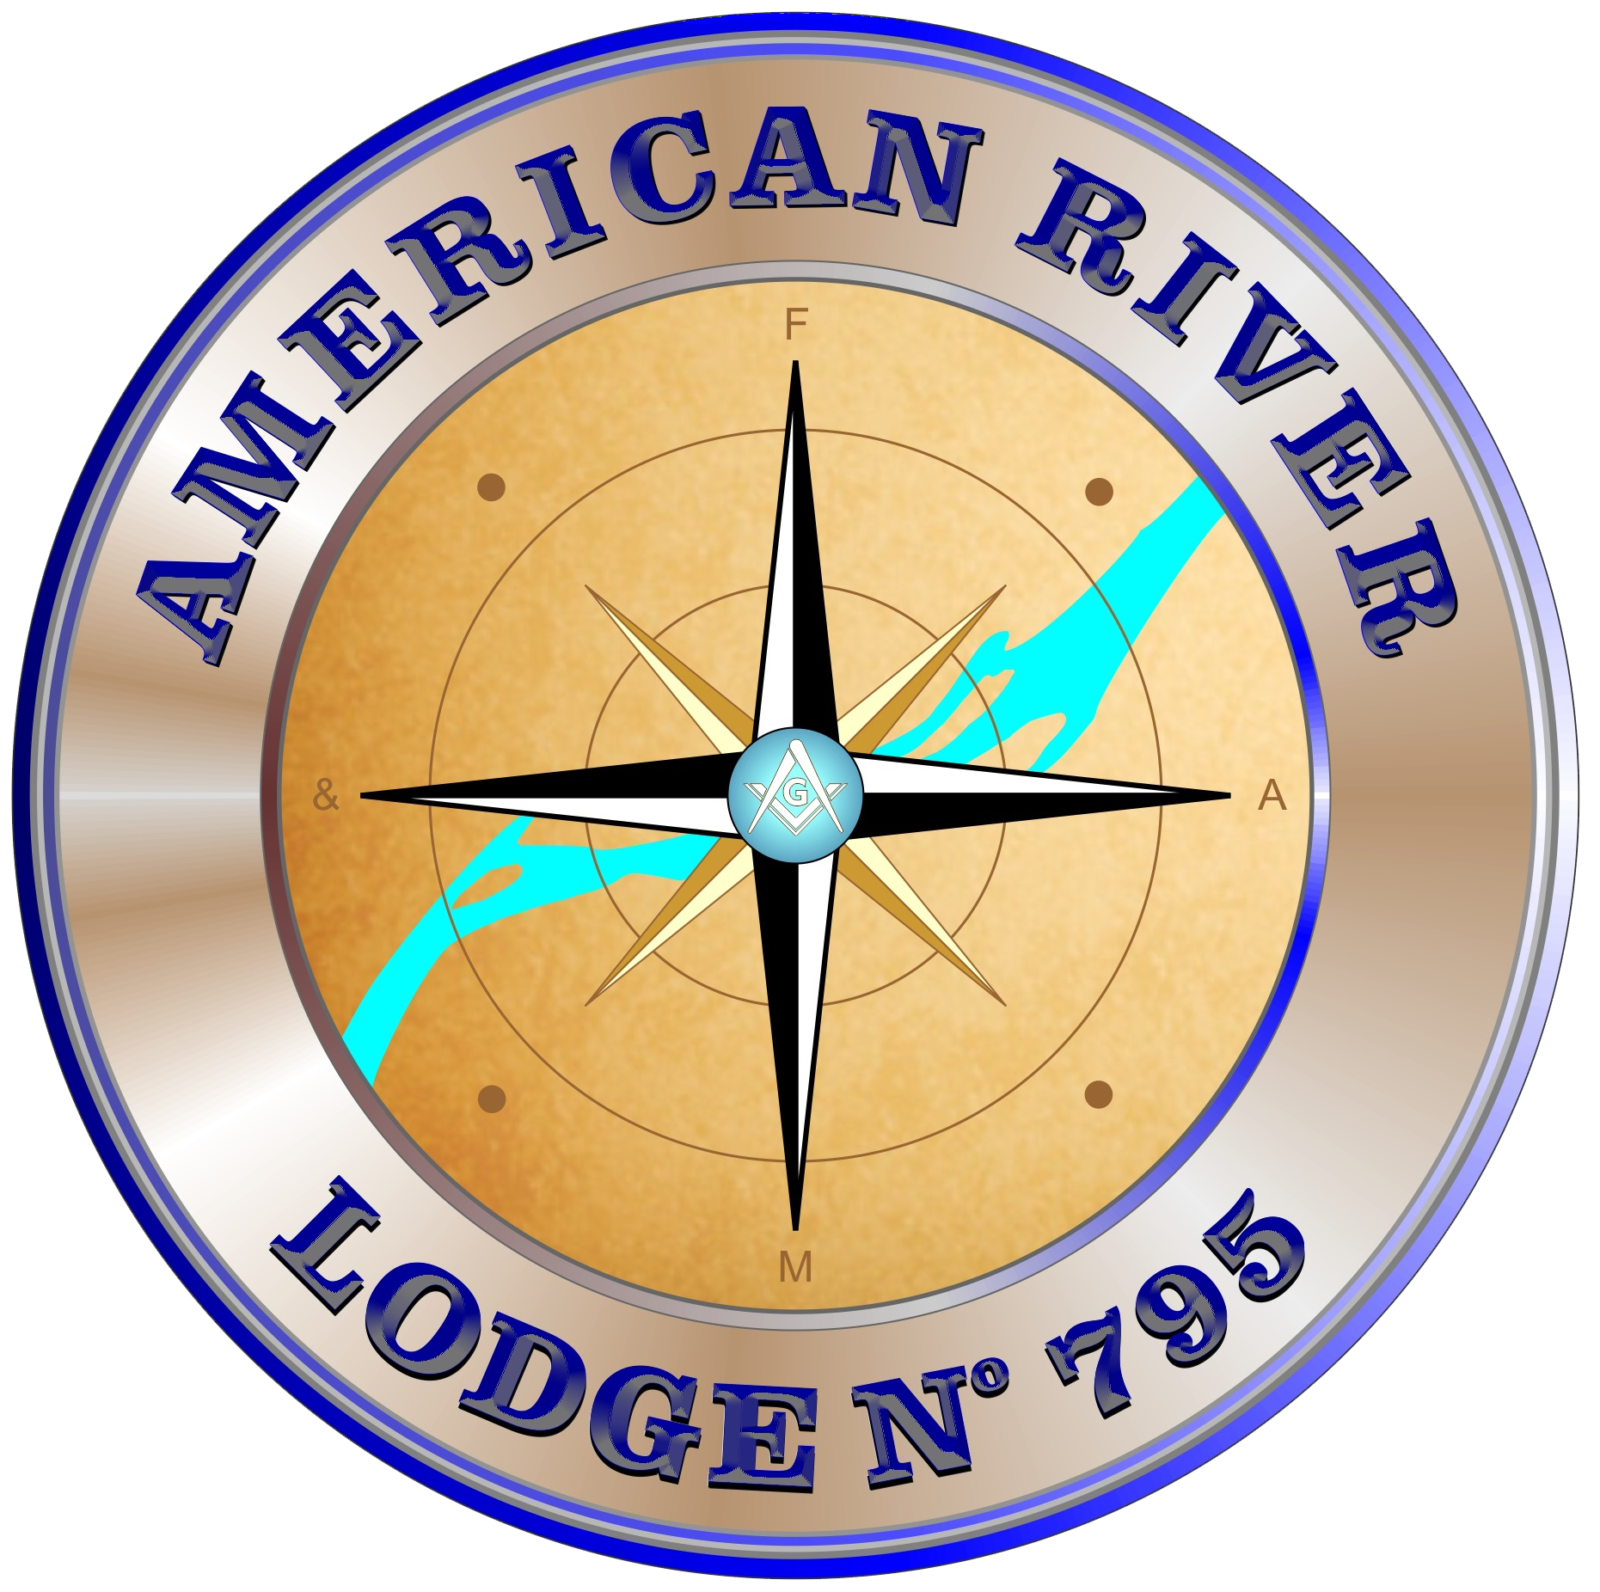 American River Masonic Lodge;